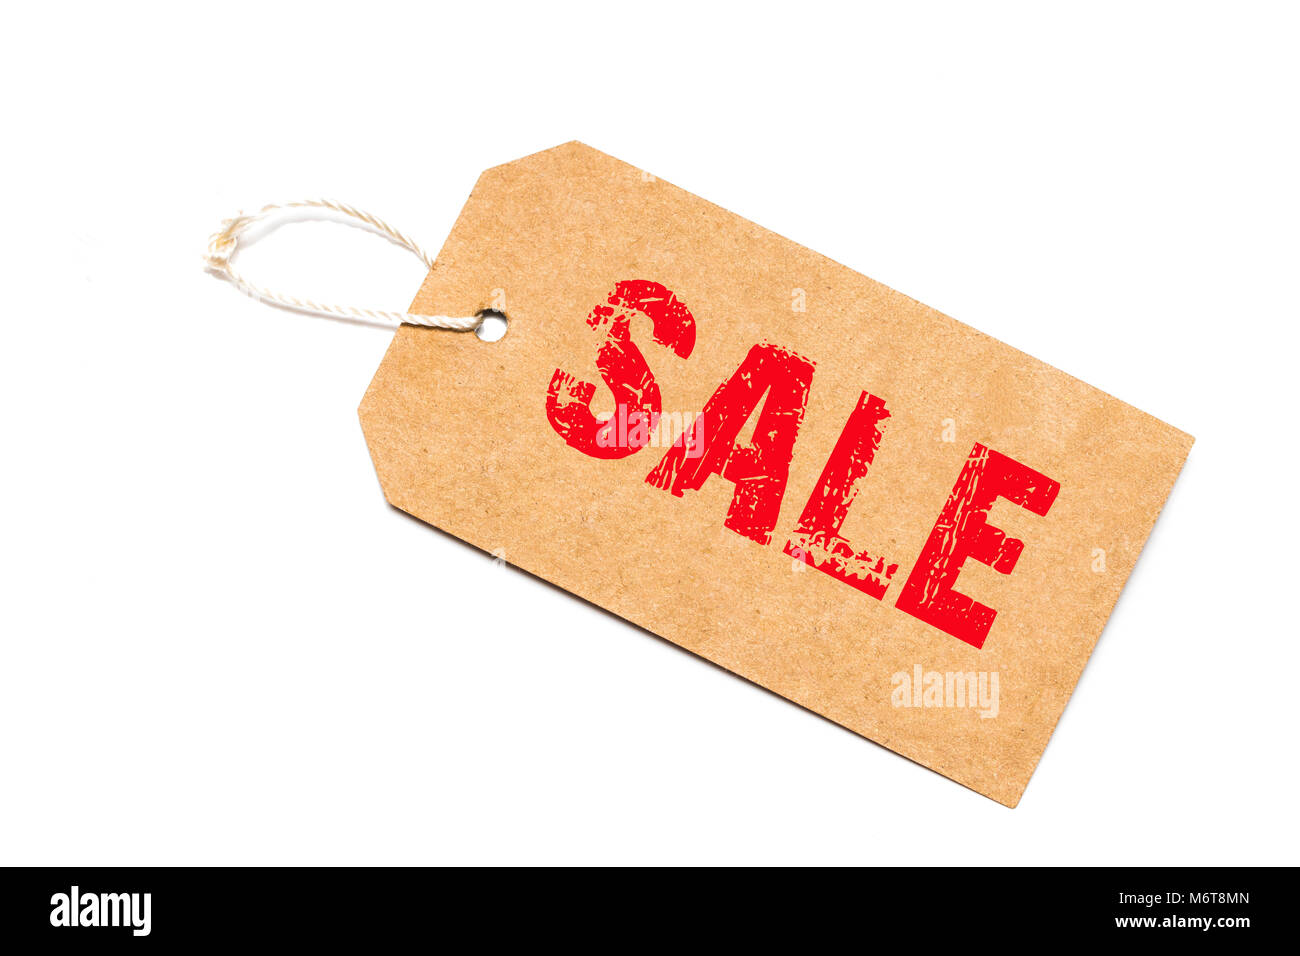 a brown paper label with the text sale written in it against a white   background - Stock Image